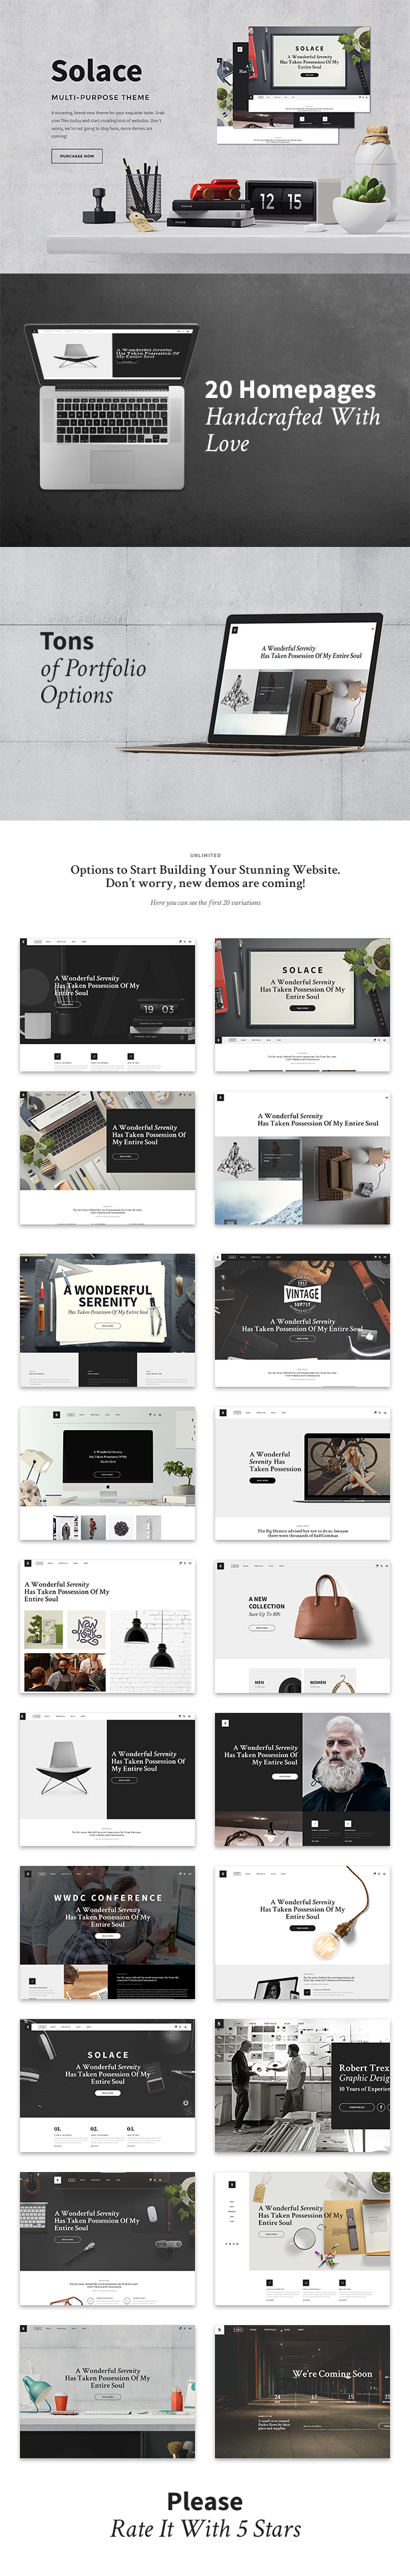 Solace | Highly Flexible Component Based HTML5 Template | Template ...